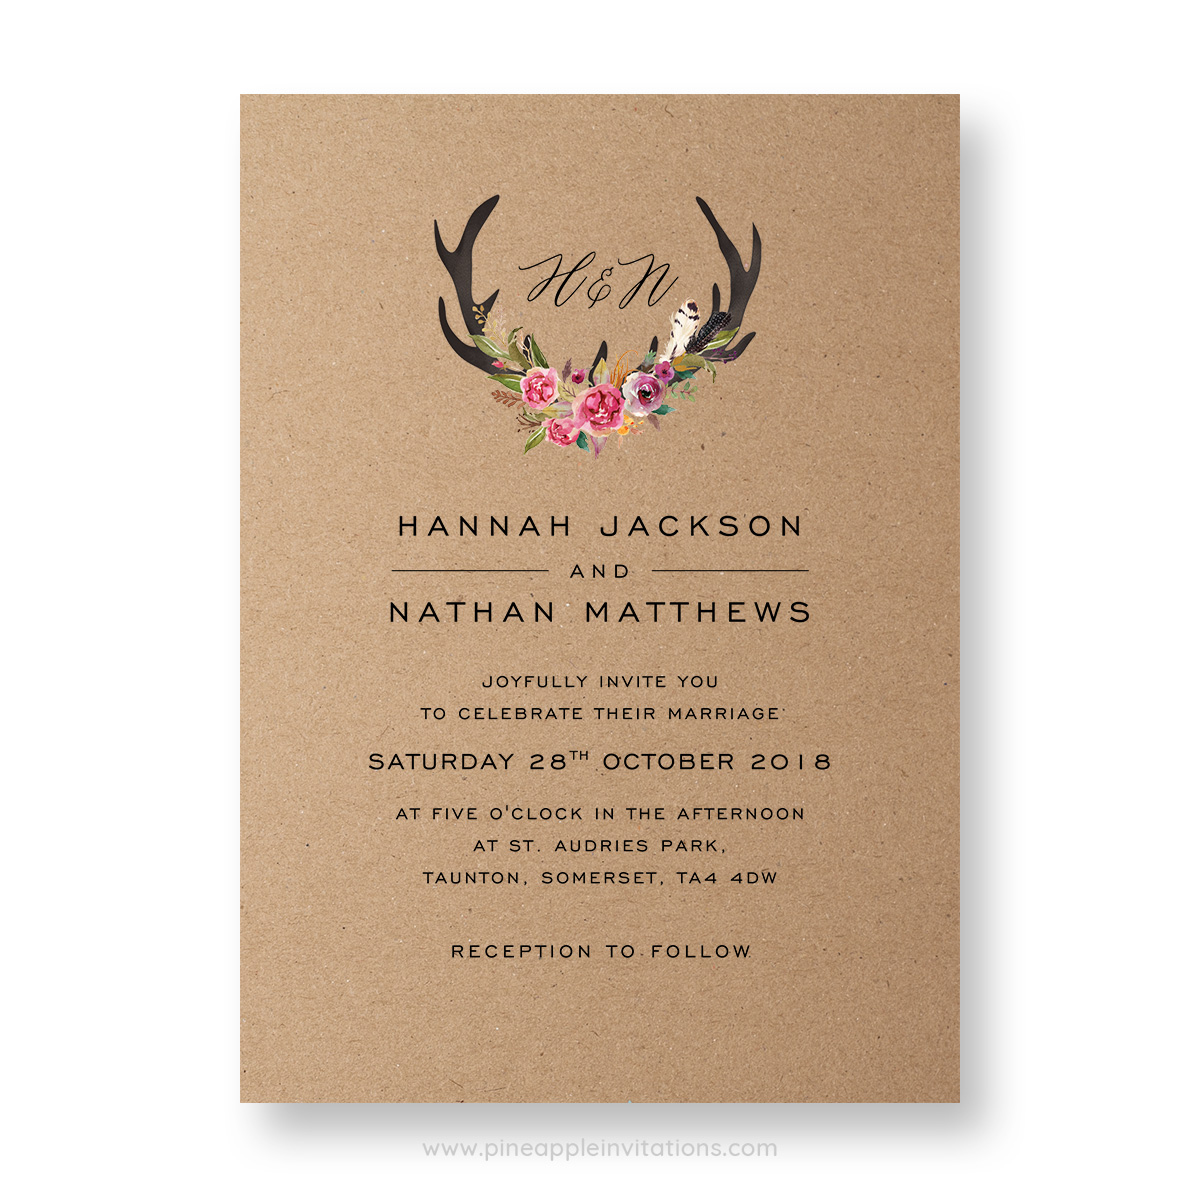 Whimsical antler wedding invitation